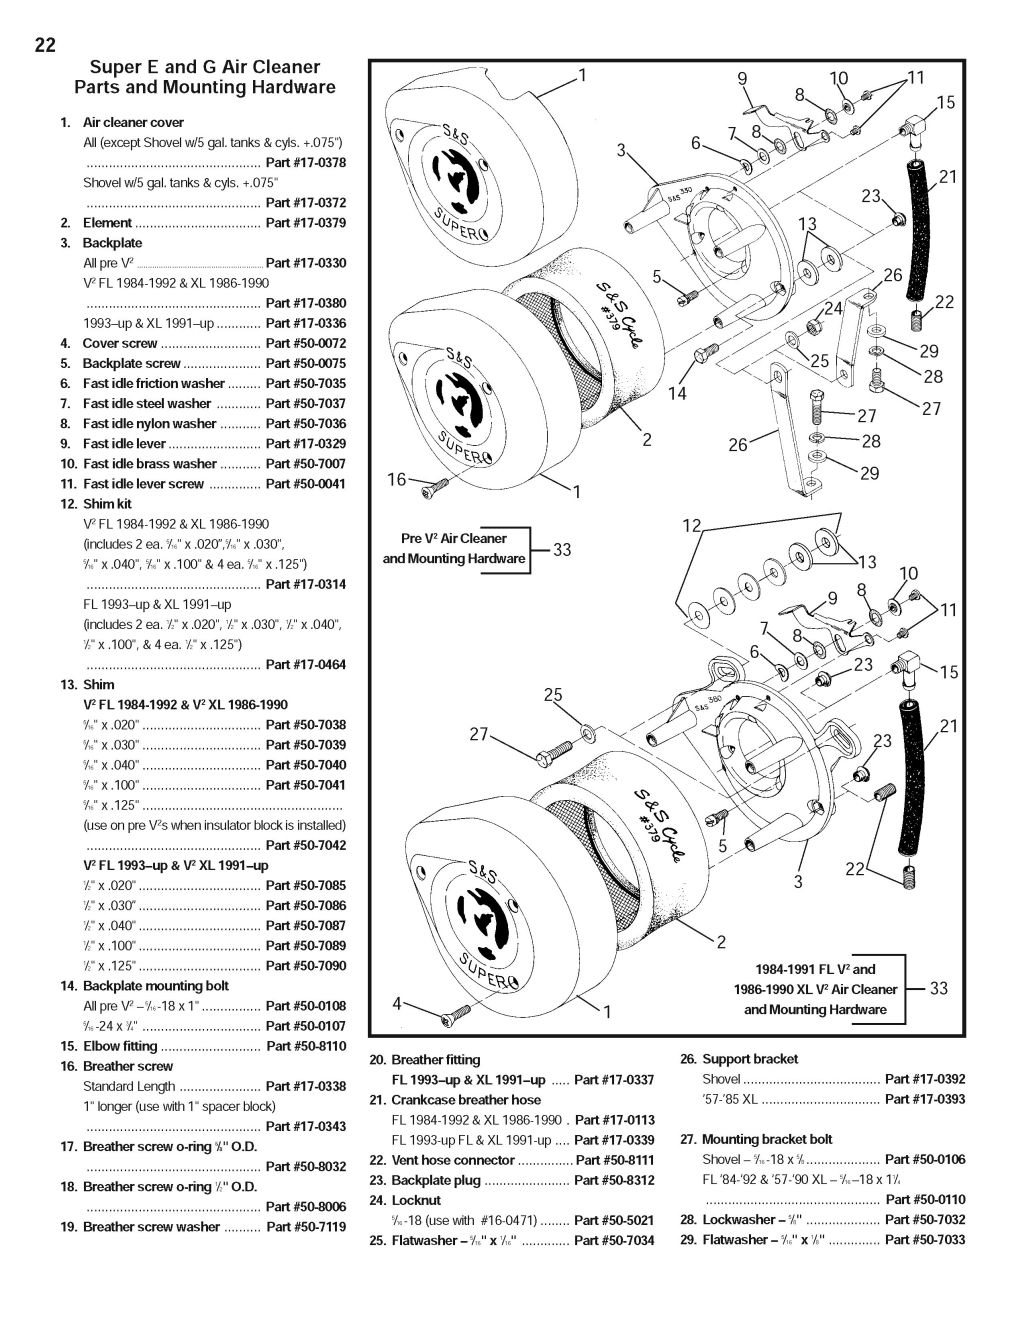 S&S Super E and G: Installation and Jetting Instructions